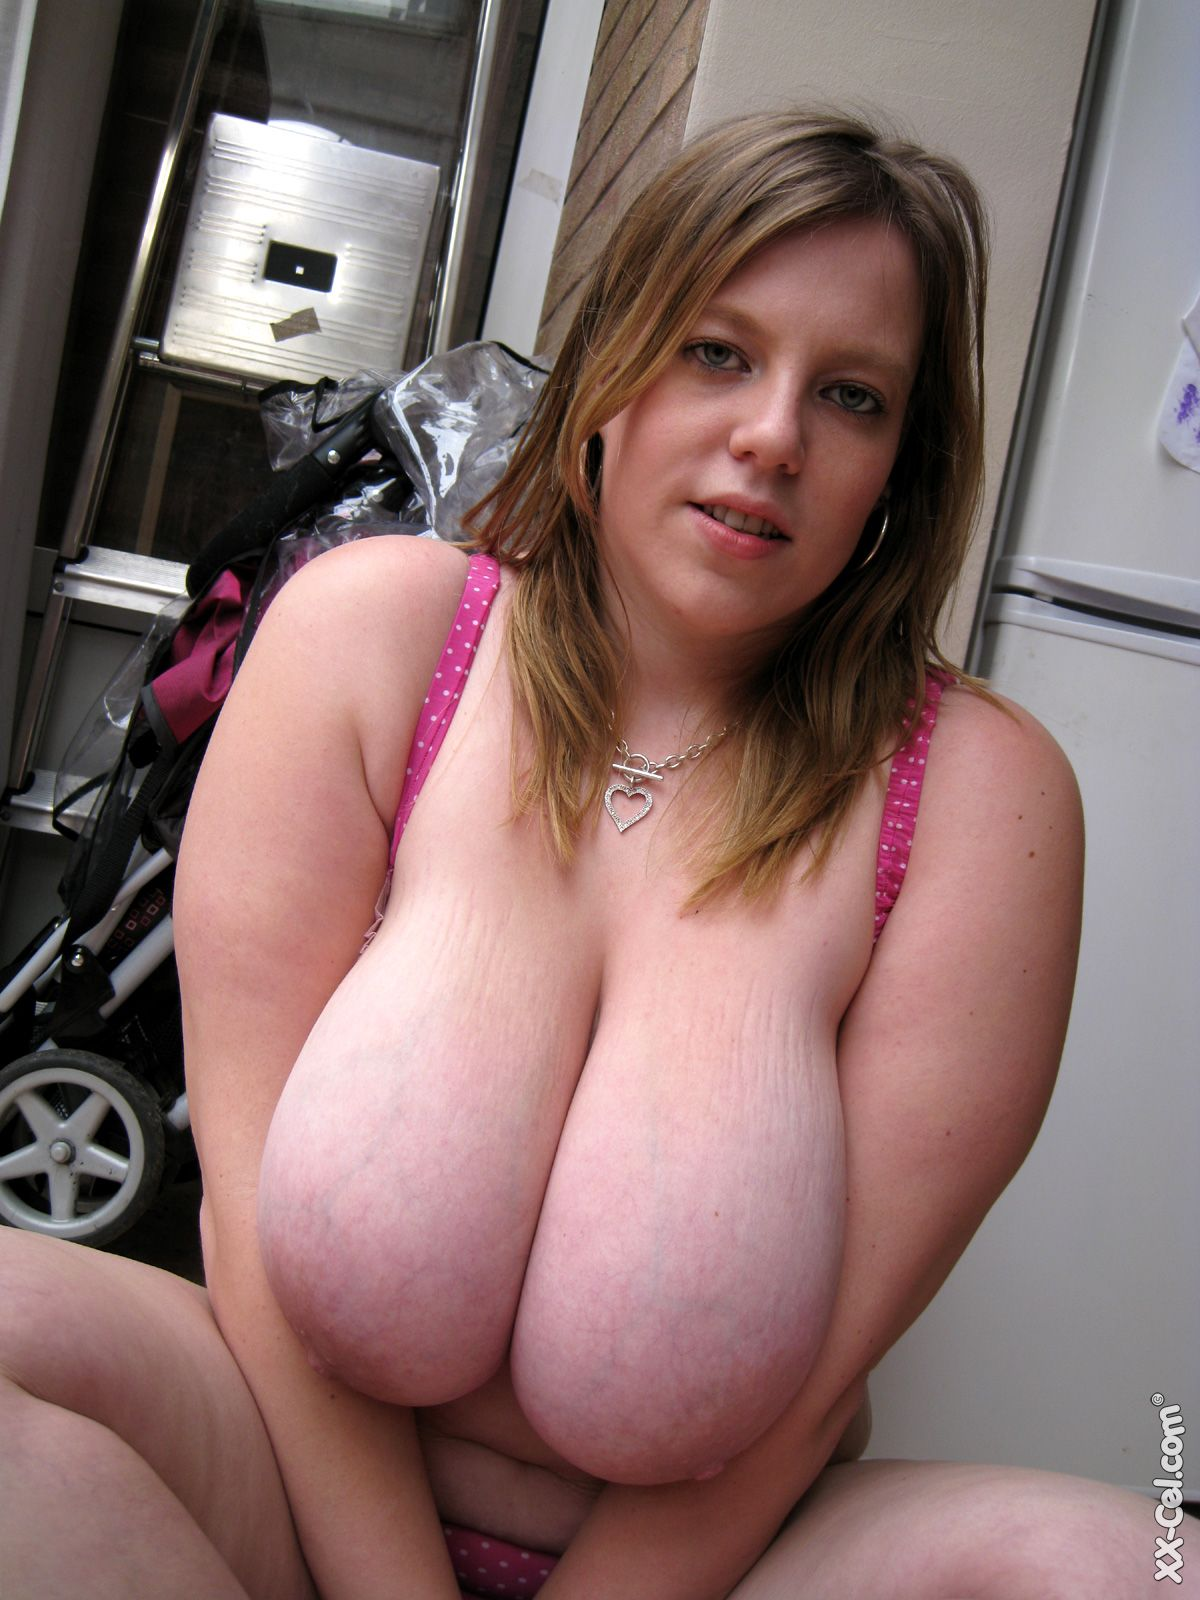 Enormous heavy tits all on a fairly slim frame wow 5